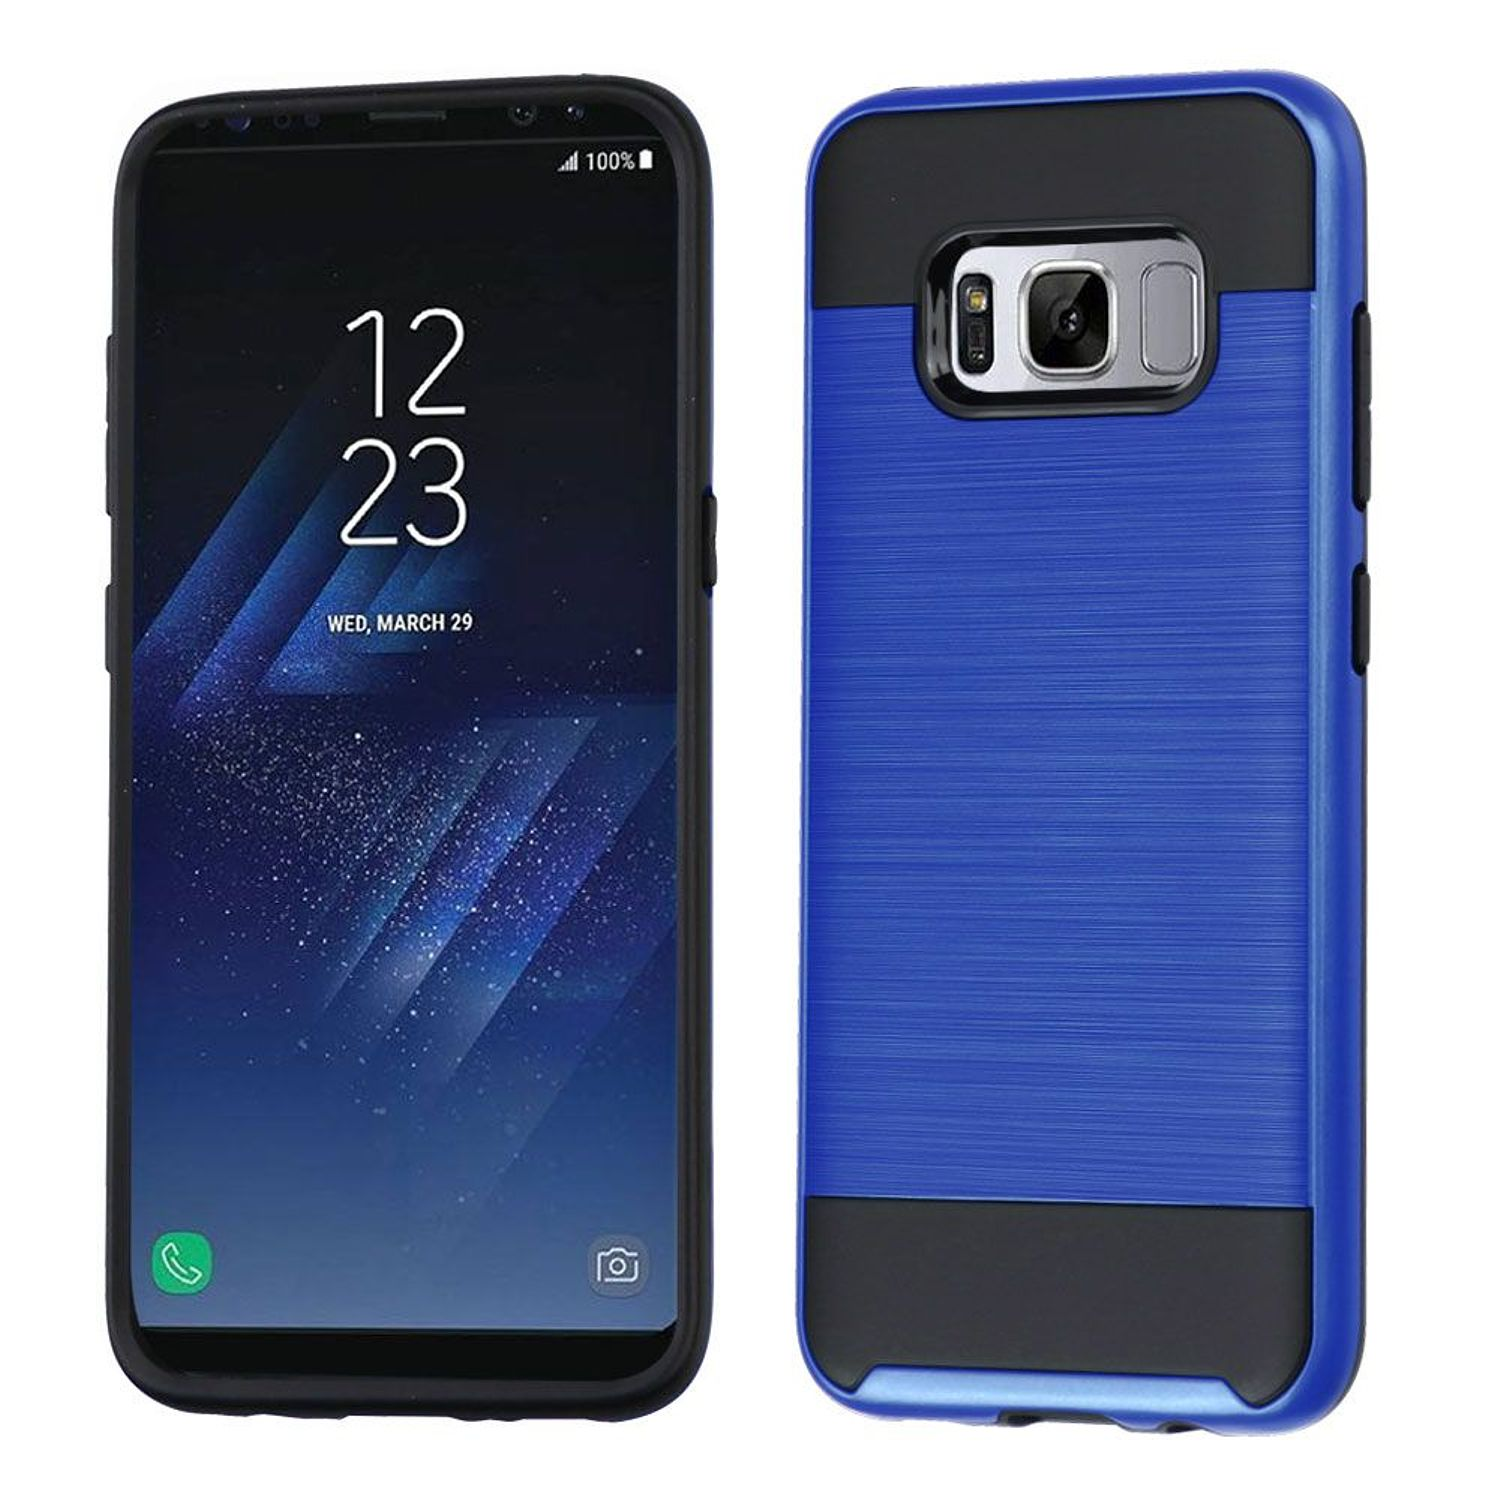 Samsung Galaxy S8 Case, by Insten Dual Layer [Shock Absorbing] Hybrid Hard Plastic/Soft TPU Rubber Case Phone Cover For Samsung Galaxy S8, Blue/Black